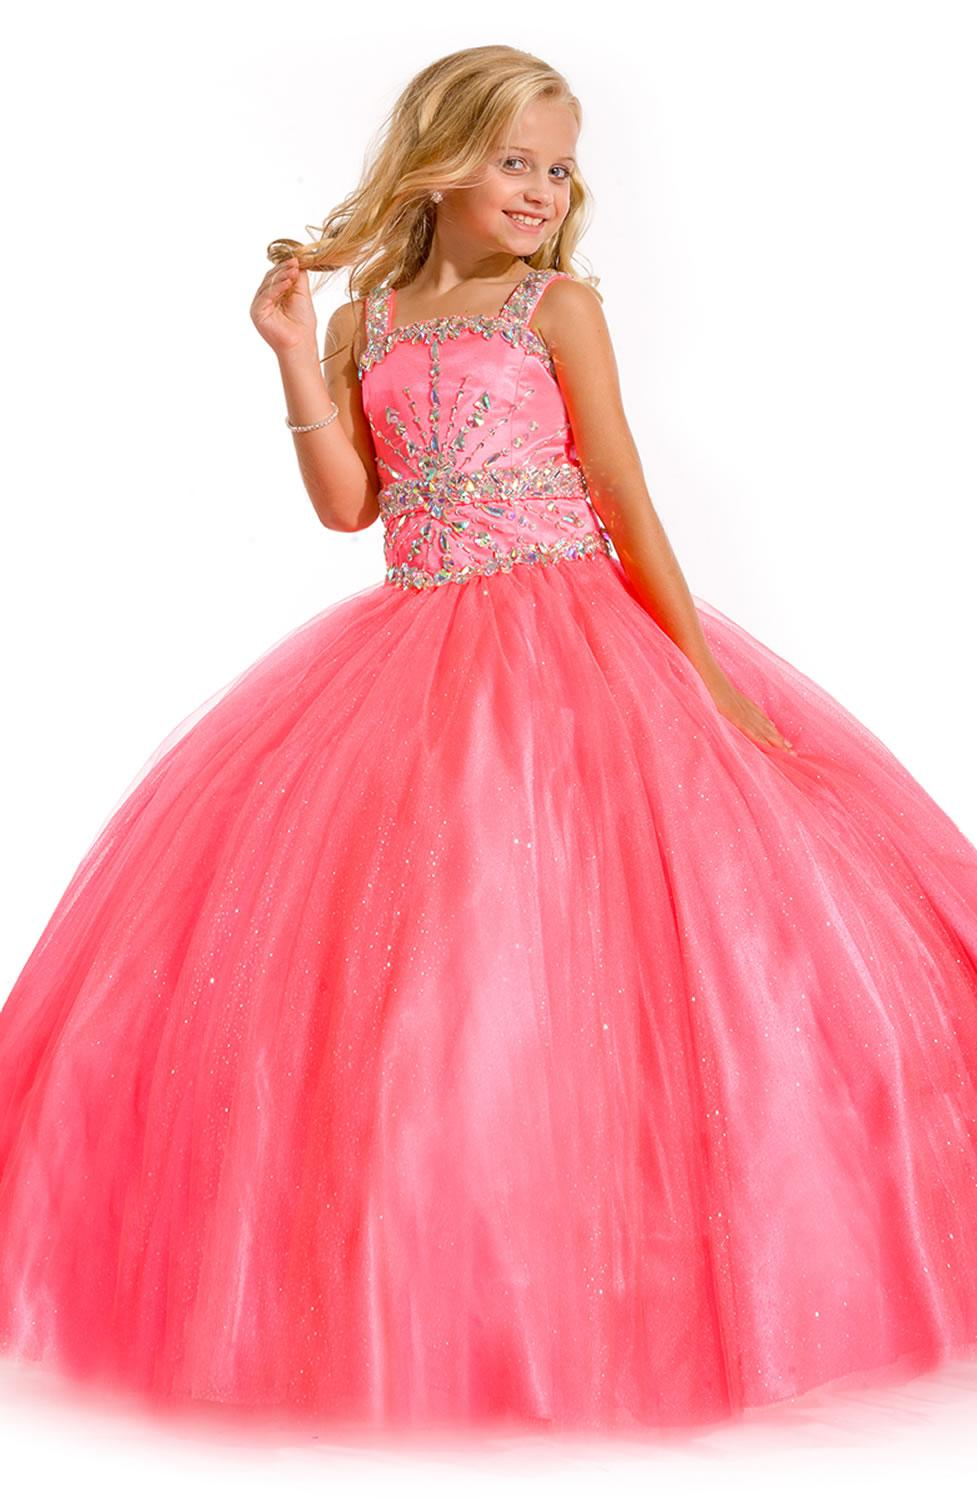 Toddler Ball Gowns – fashion dresses